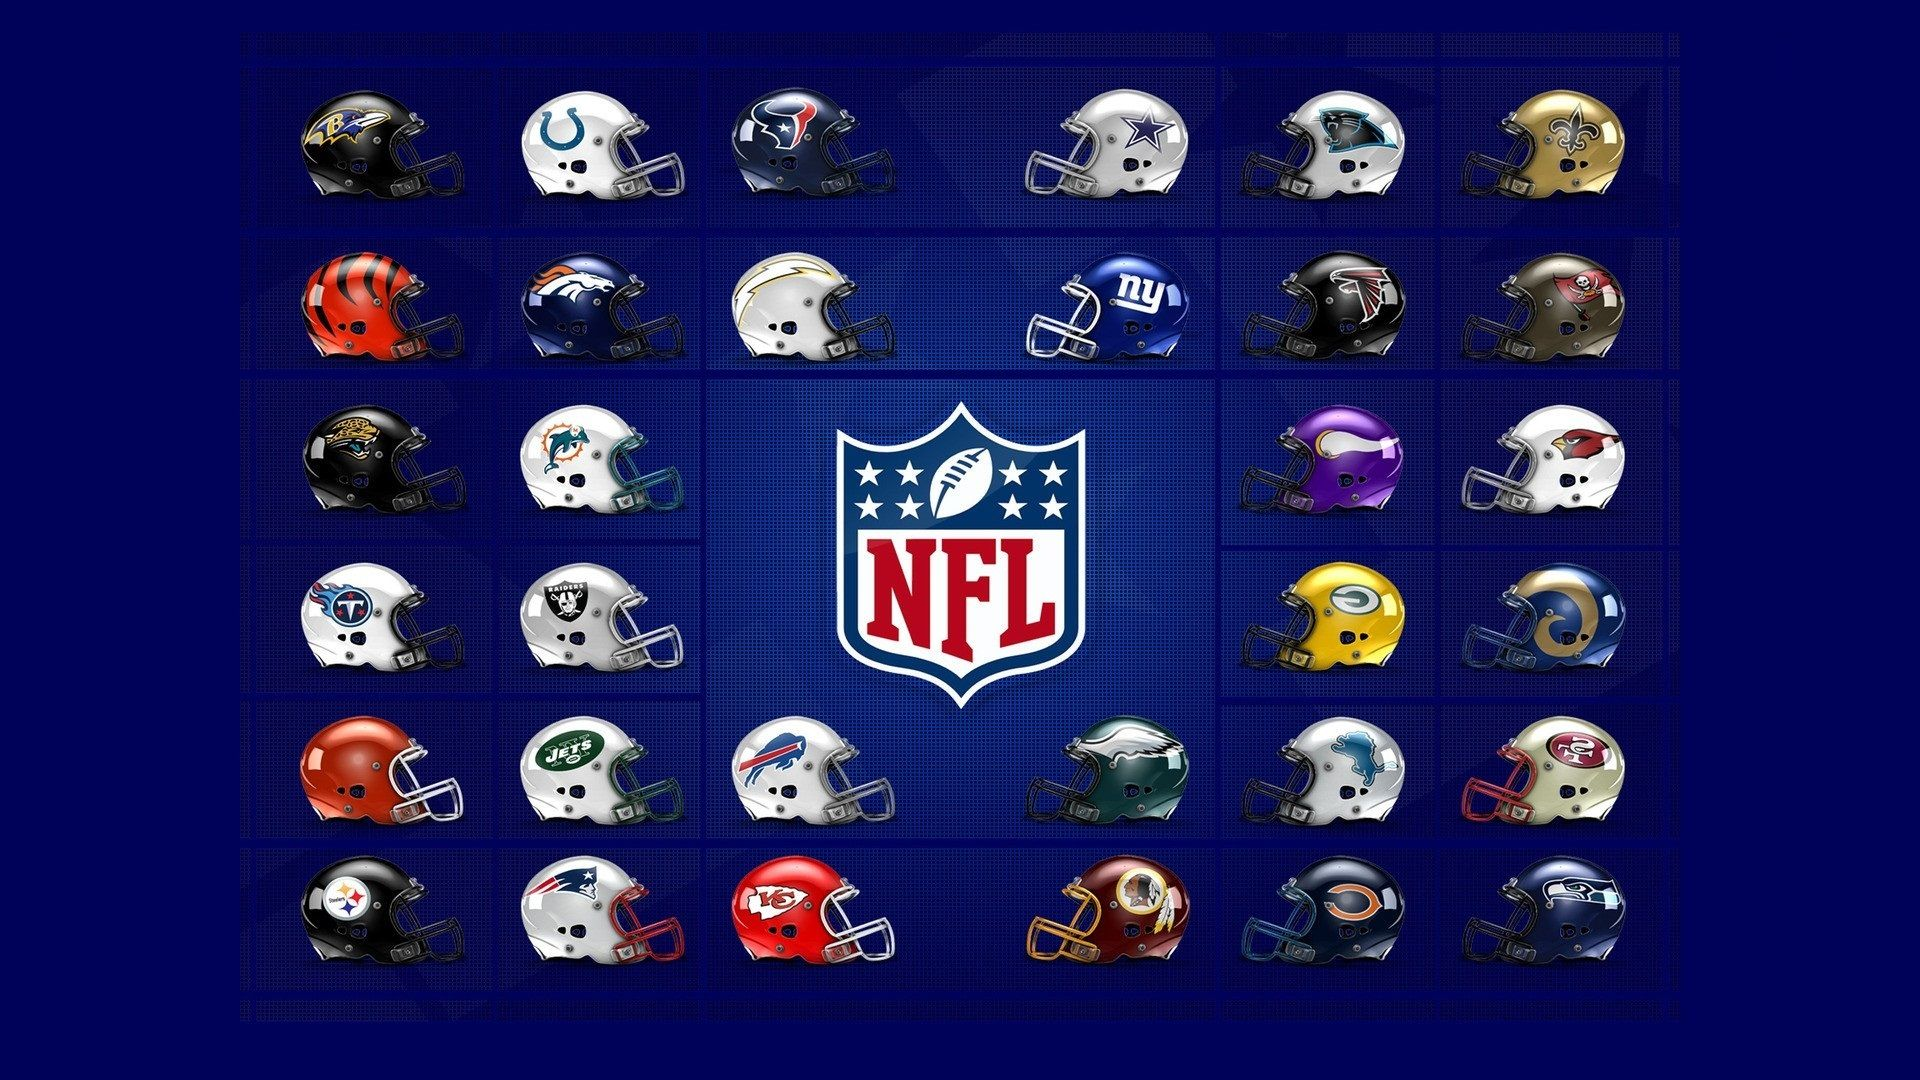 Nfl Wallpapers Logo Wallpaper Hd Nfl Teams Logos Nfl Logo